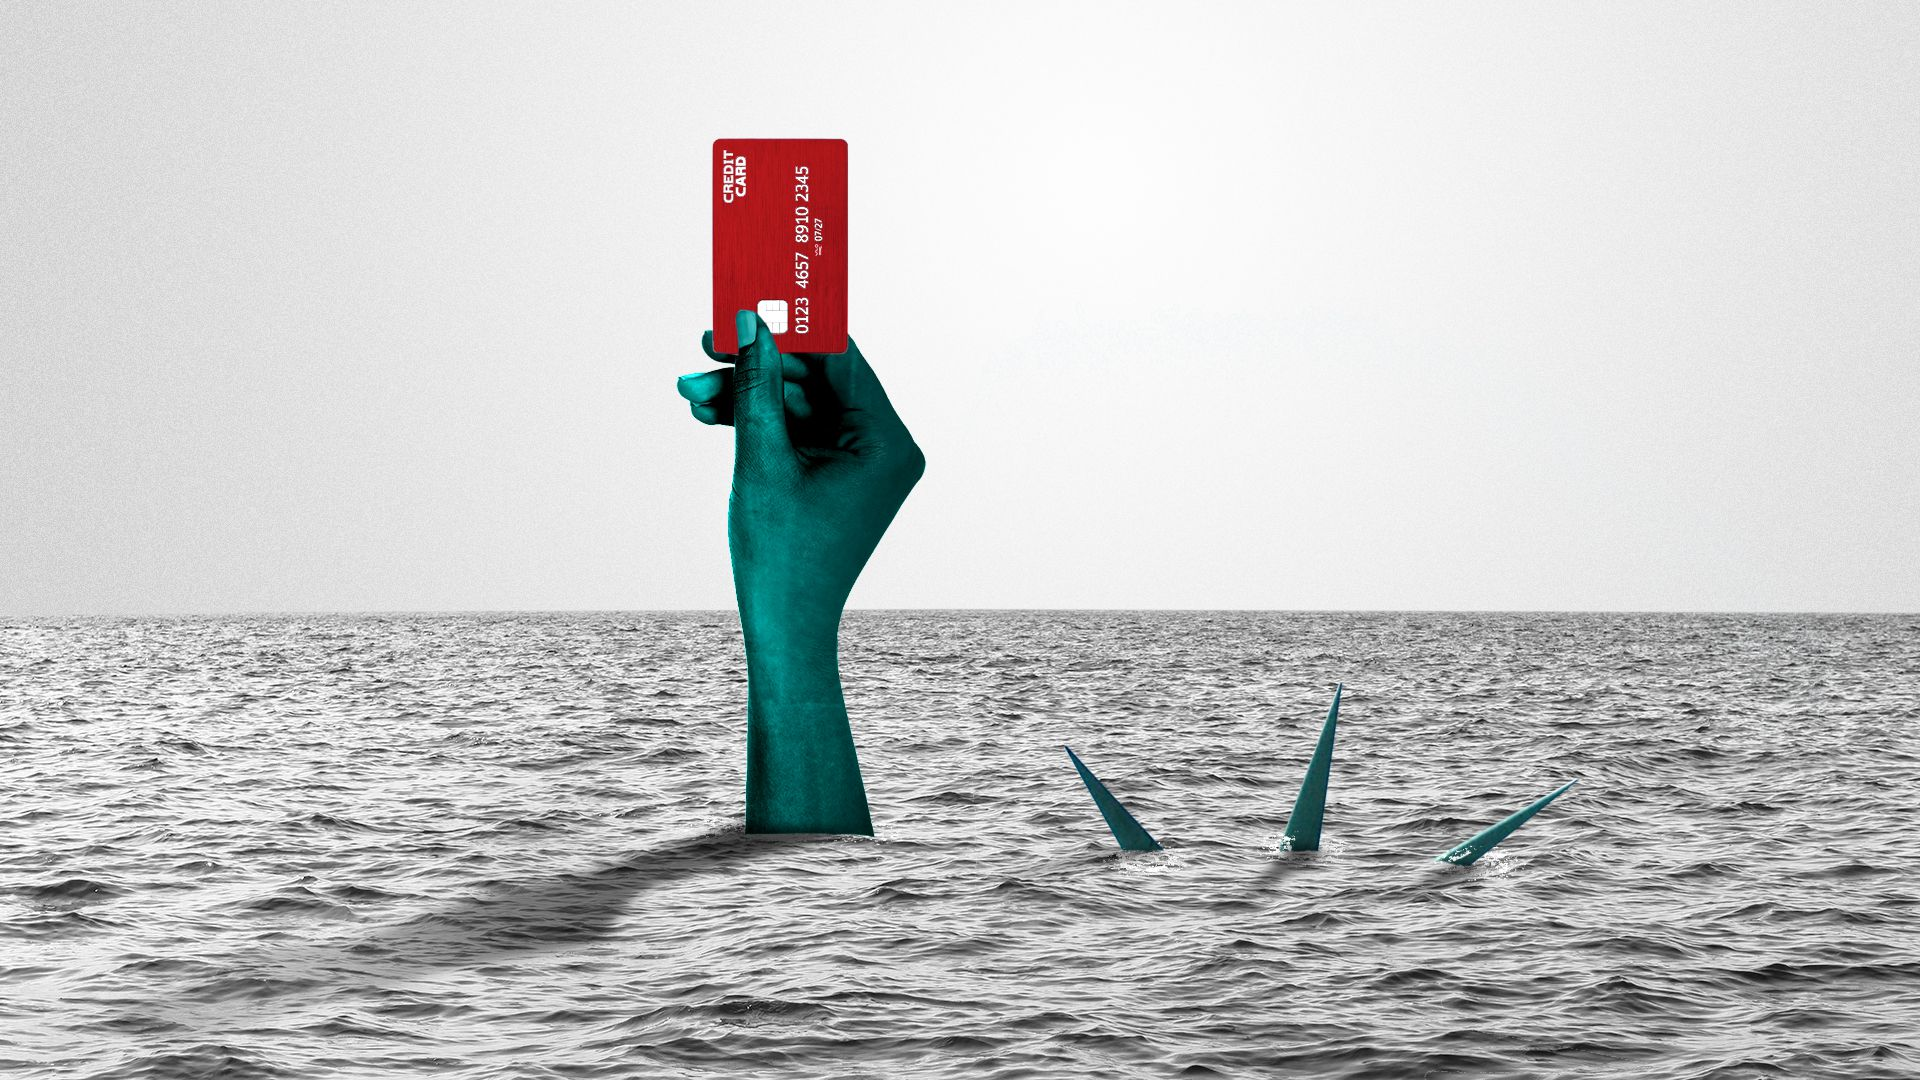 Illustration of the Statue of Liberty drowning and holding up a credit card just above water.